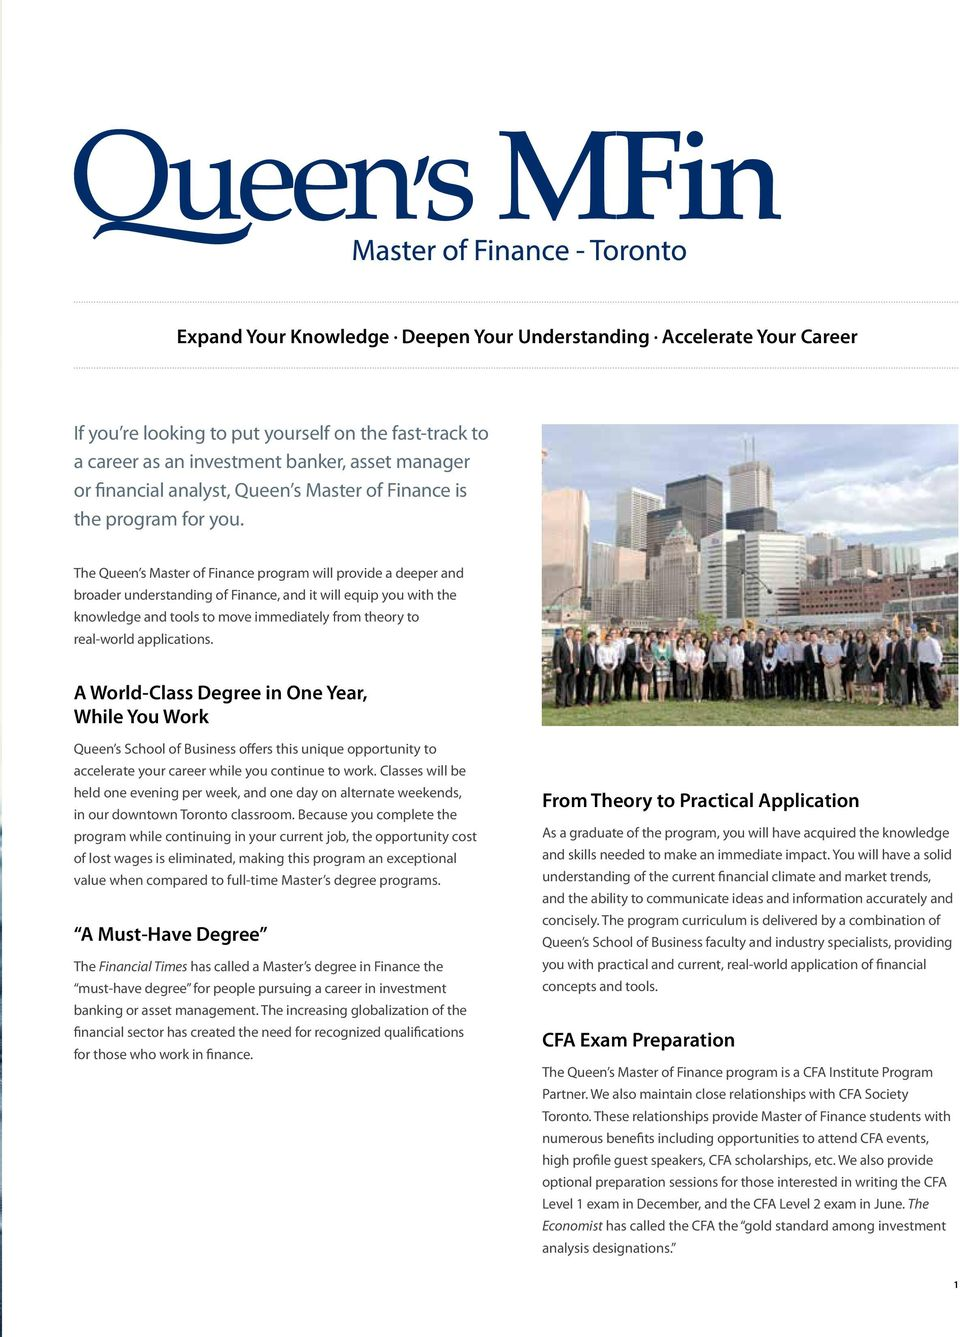 The Queen s Master of Finance program will provide a deeper and broader understanding of Finance, and it will equip you with the knowledge and tools to move immediately from theory to real-world